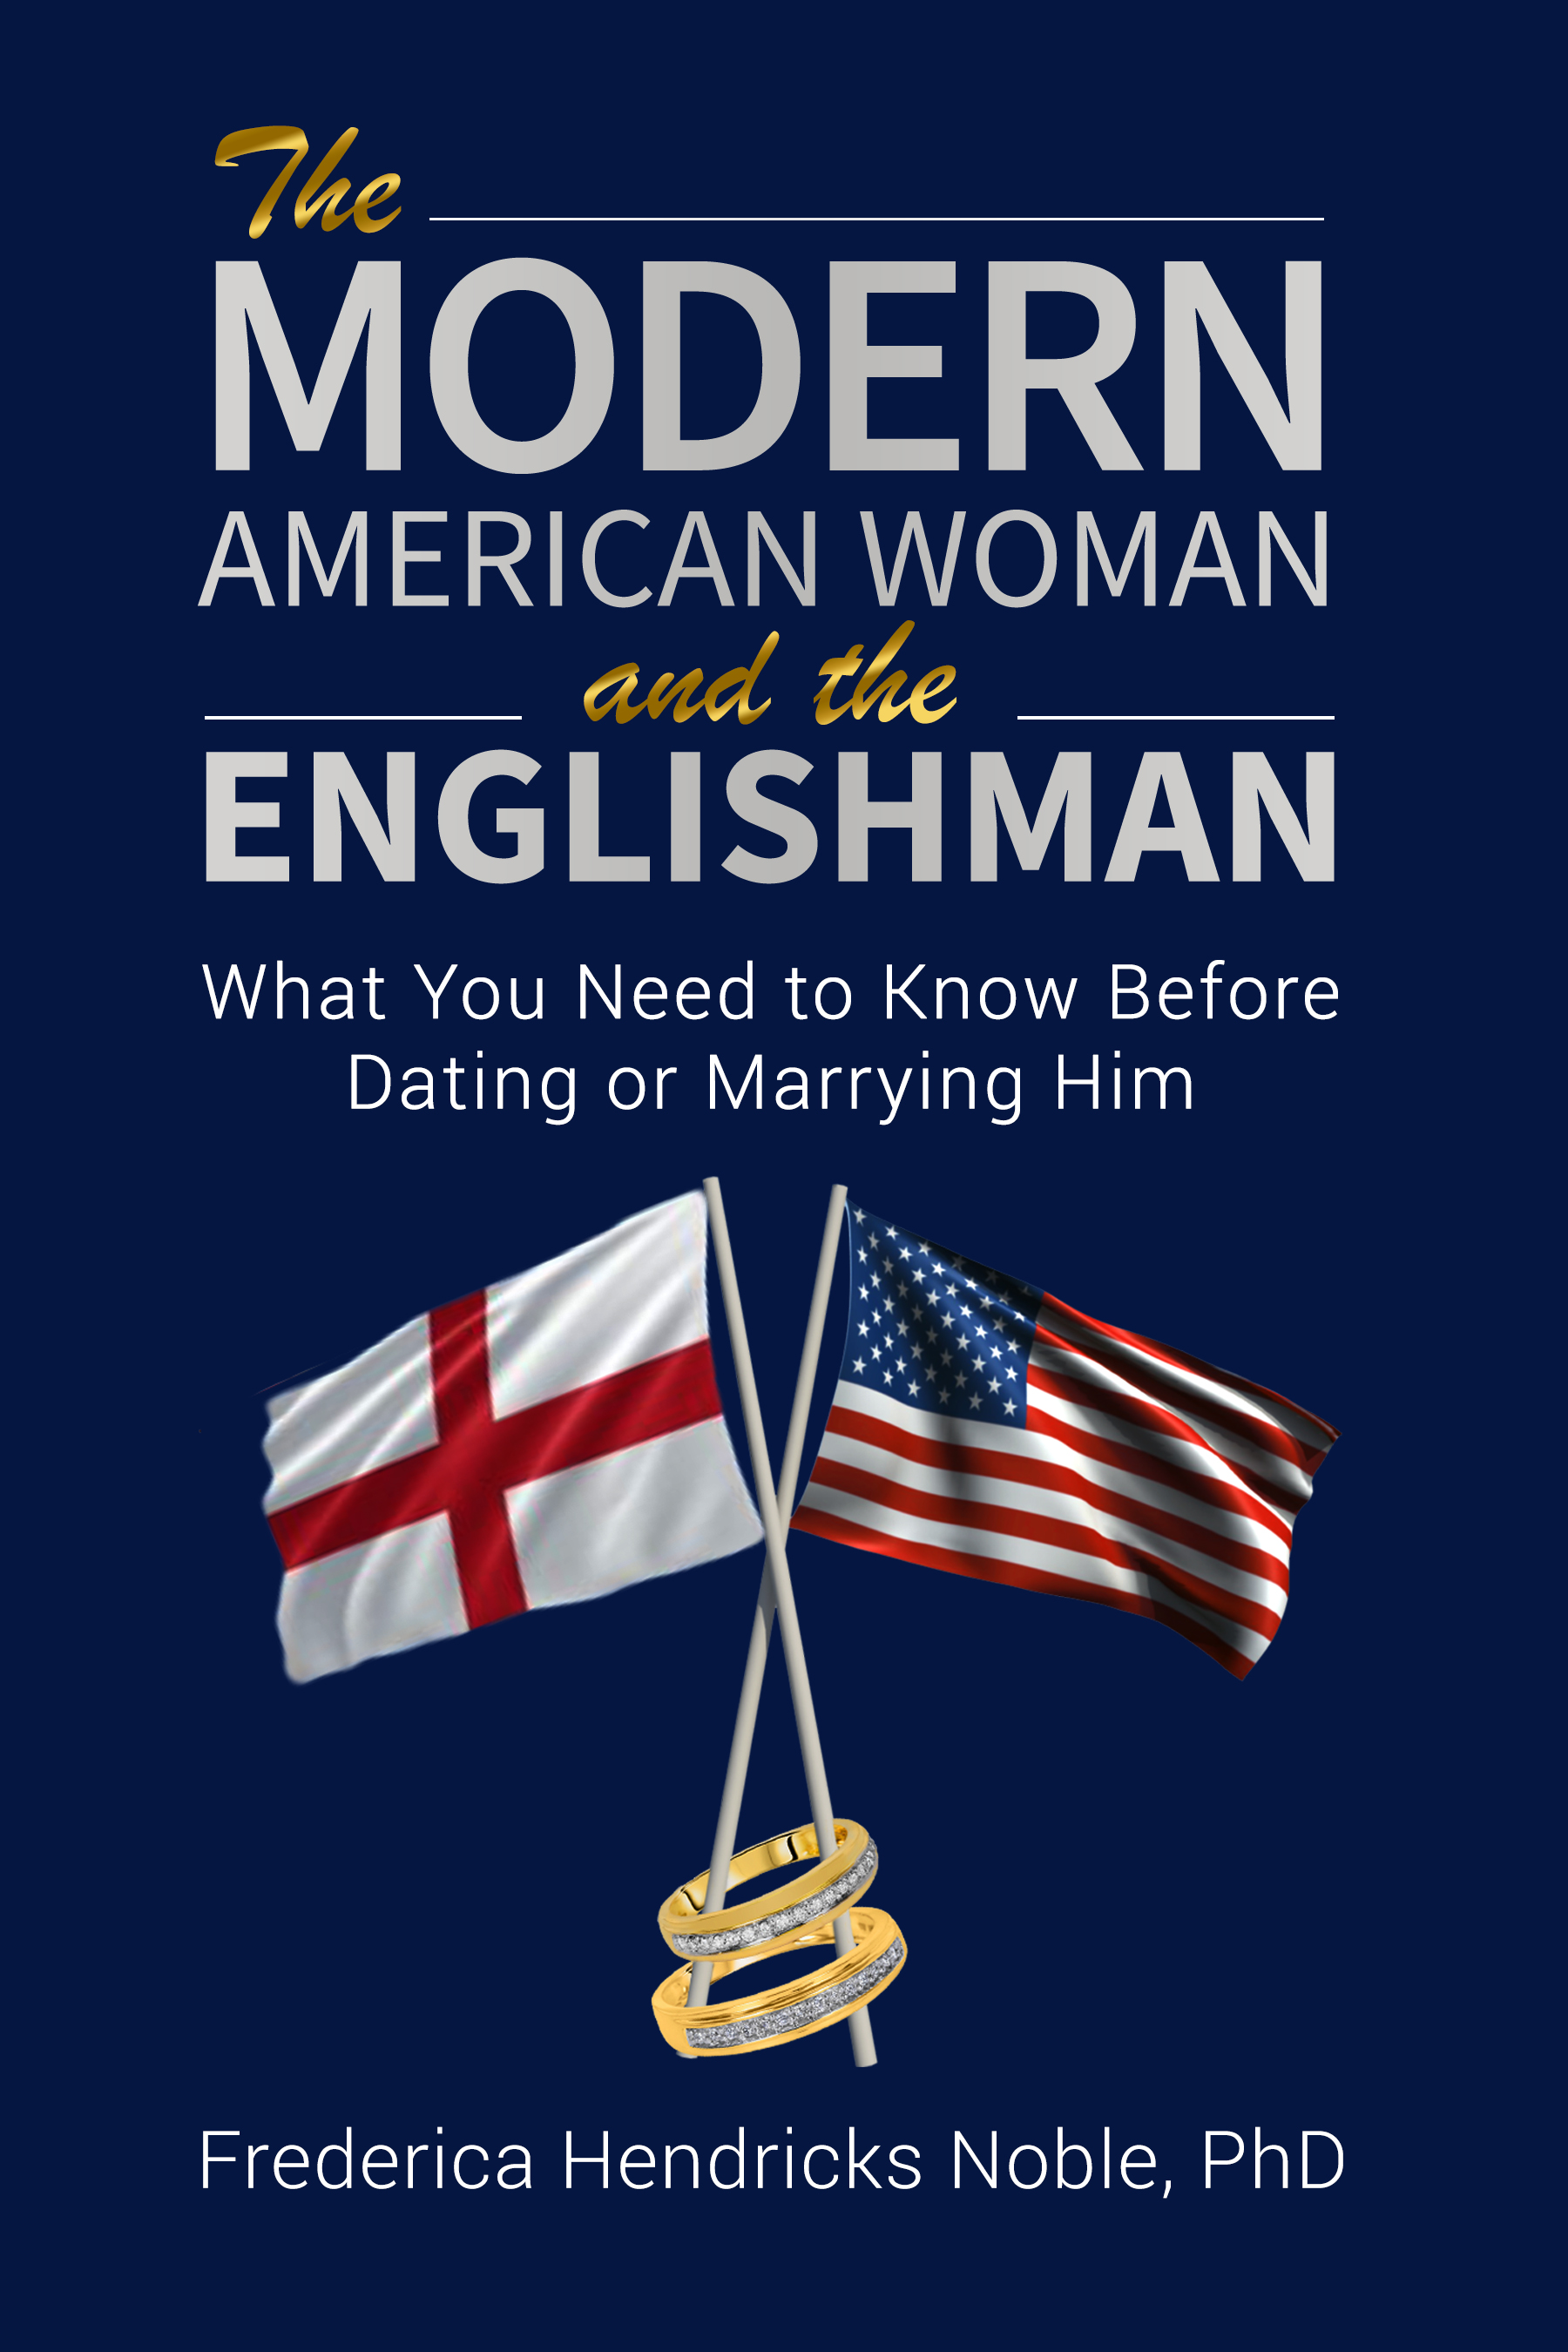 THE MODERN AMERICAN WOMAN AND THE ENGLISHMAN